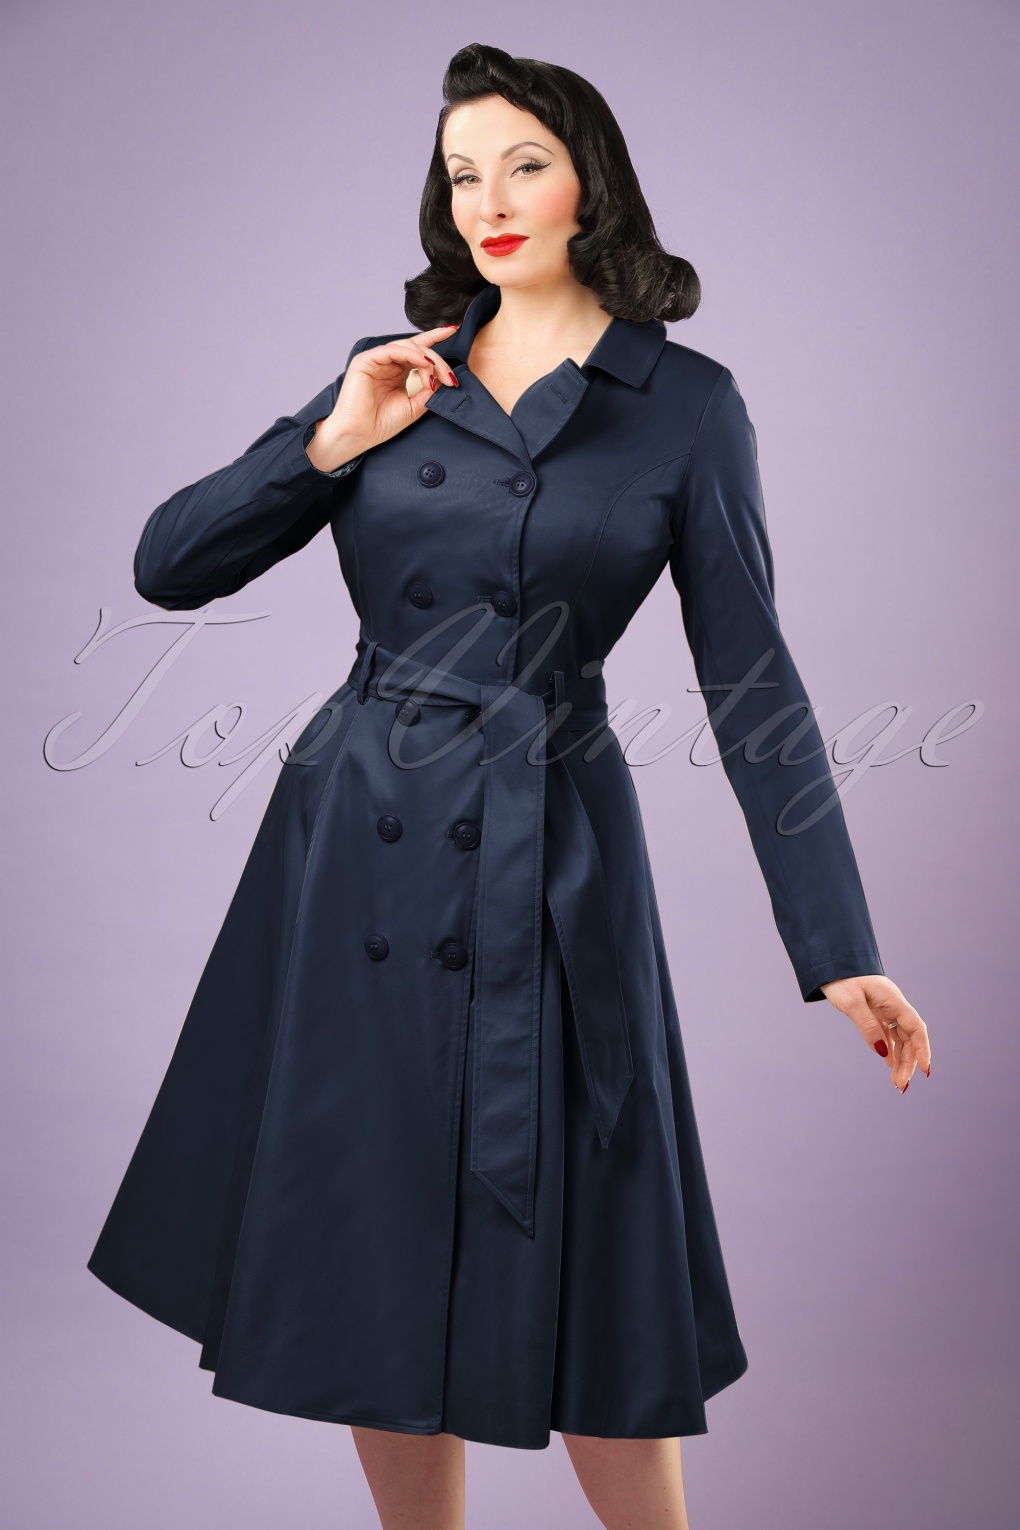 Vintage Coats & Jackets | Retro Coats and Jackets 40s Korrina Swing Trench Coat in Navy £131.44 AT vintagedancer.com